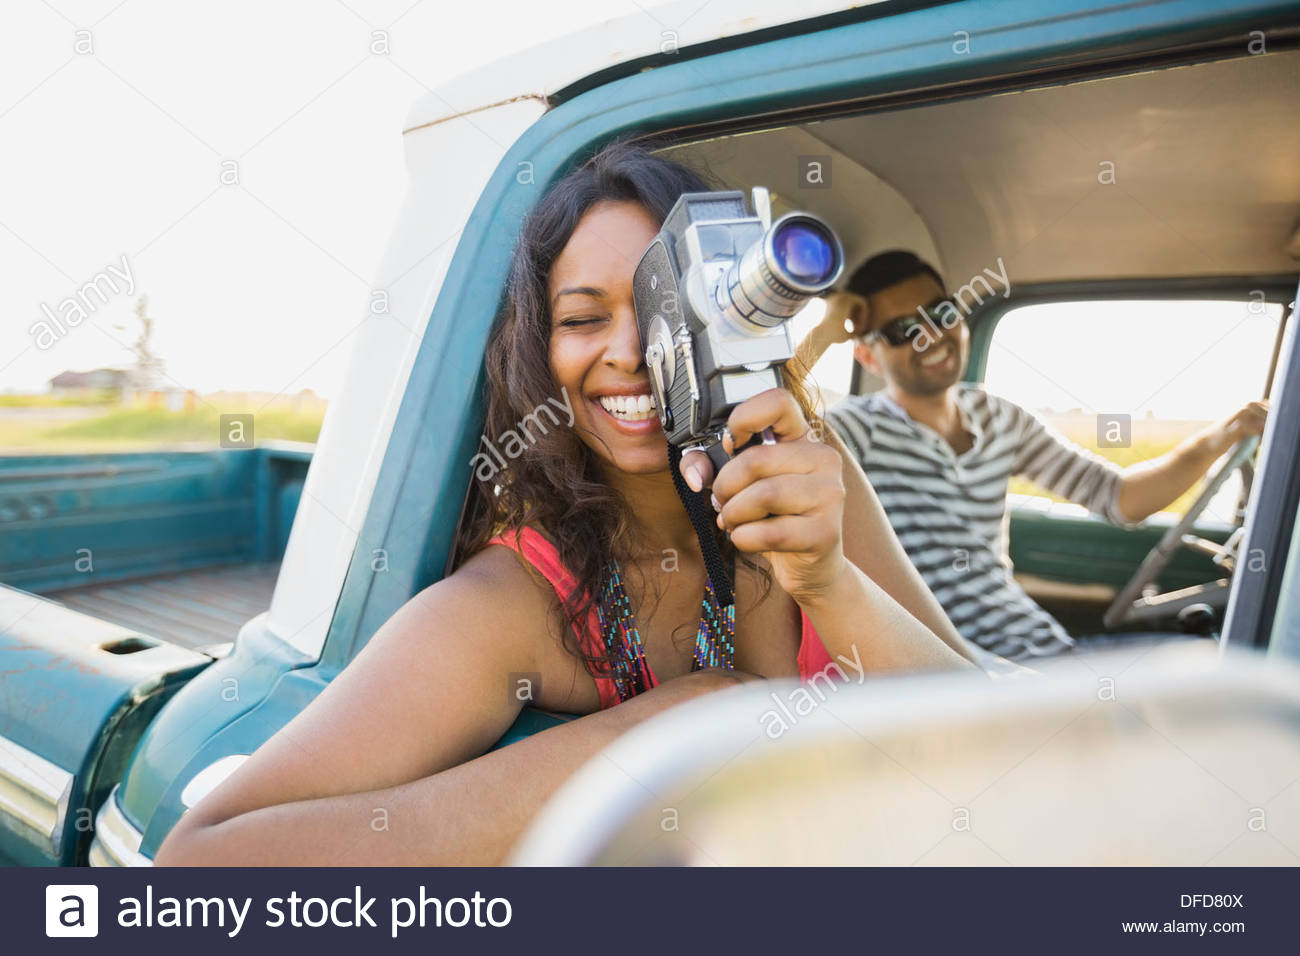 Woman looking through vintage camera in pick-up truck - Stock Image